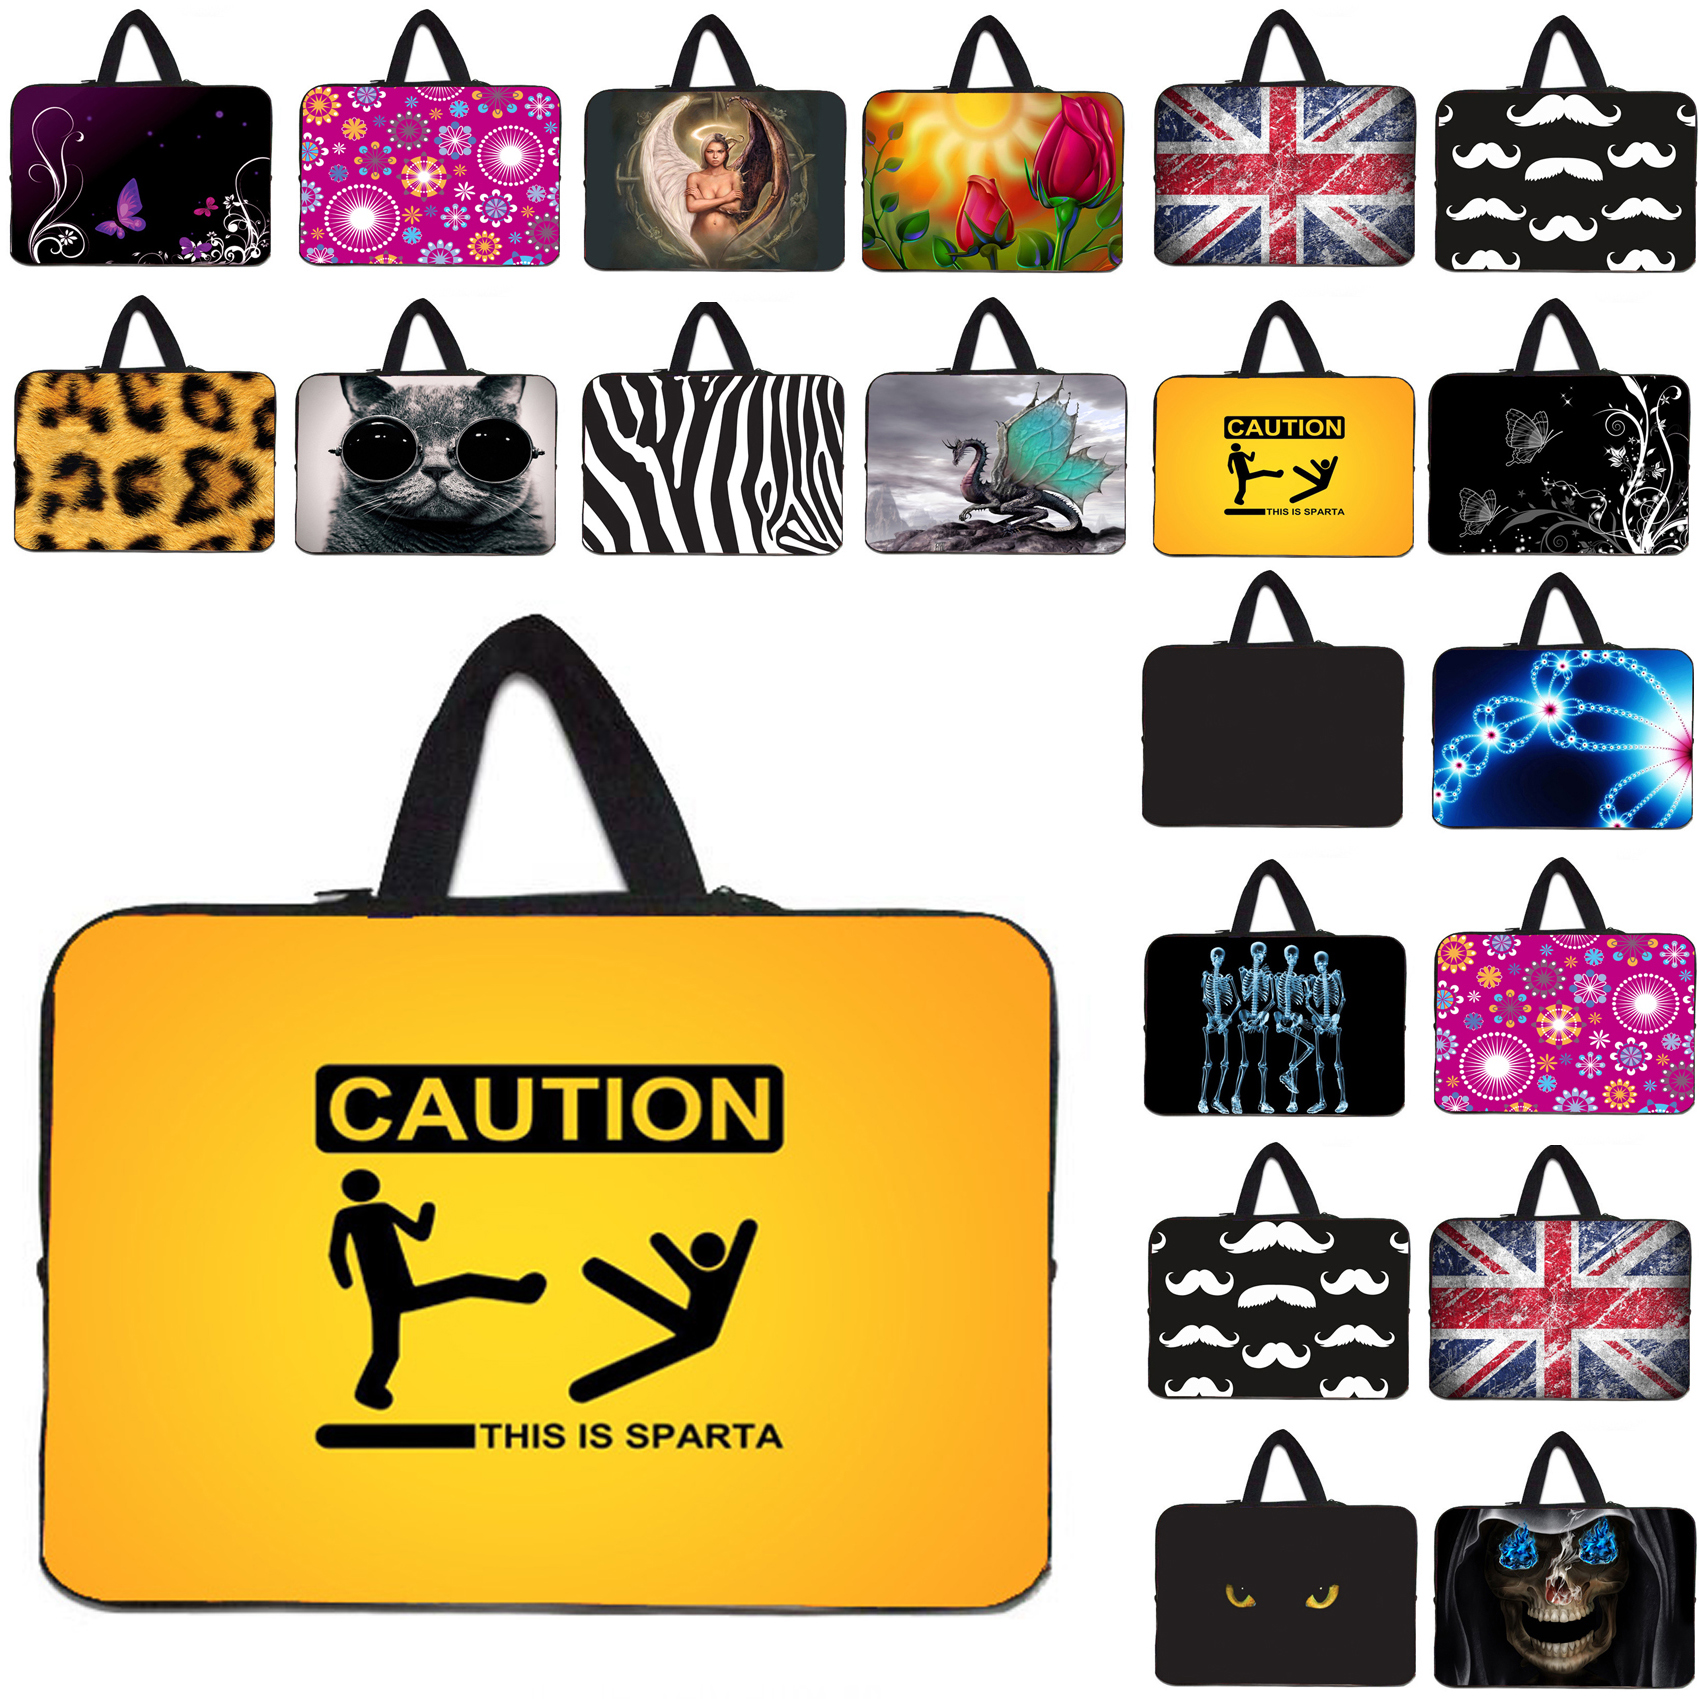 womens carry bag neoprene shockproof 7.9 11.6 10 12 13 14 15 17 laptop sleeve bag notebook pc handle bag cover cases soft pouch